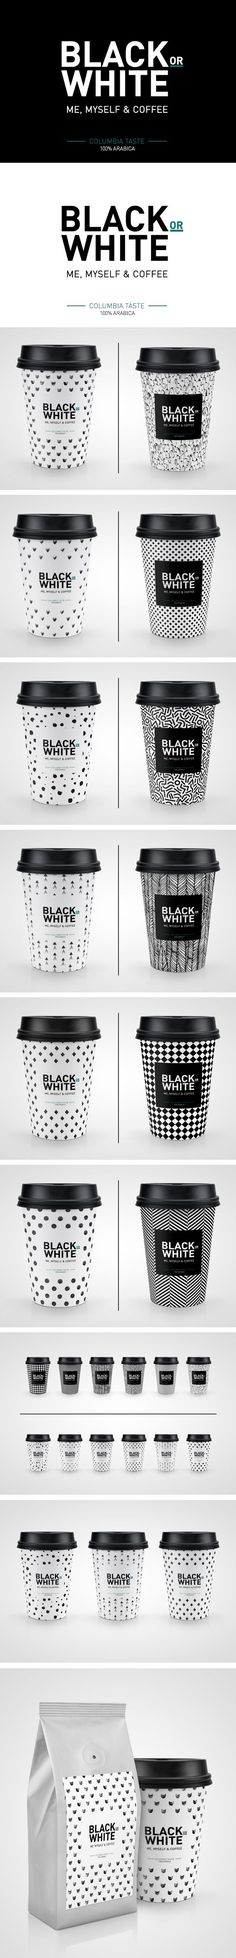 Black or White Coffee Mock-up on Behance PD #coffeeart